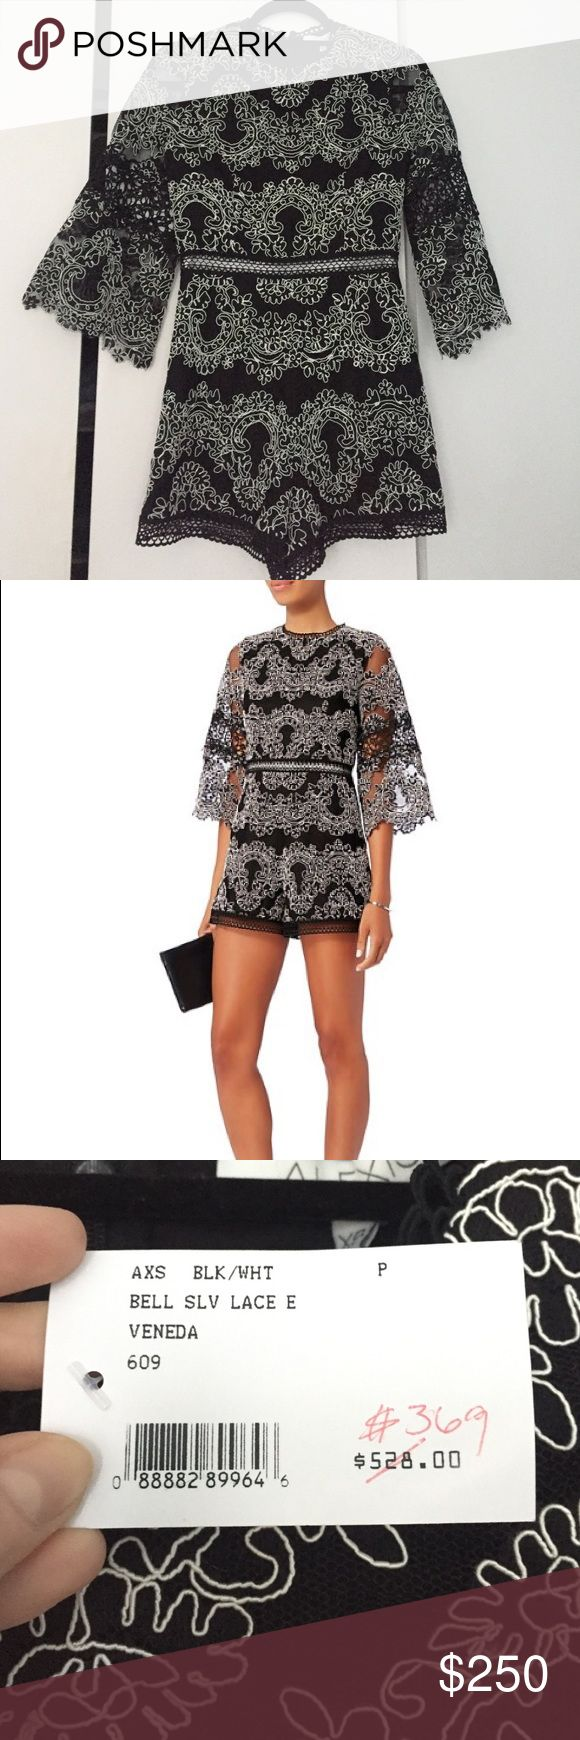 Alexis Veneda Bell Sleeve Lace Romper Gorgeous lace romper by Alexis. Just bought it from Intermix at a great price and have never worn it. I love it, but bought it for an occasion that I decided I'd rather wear a dress to. It's a size P, which is an XS equivalent. Alexis Dresses Long Sleeve